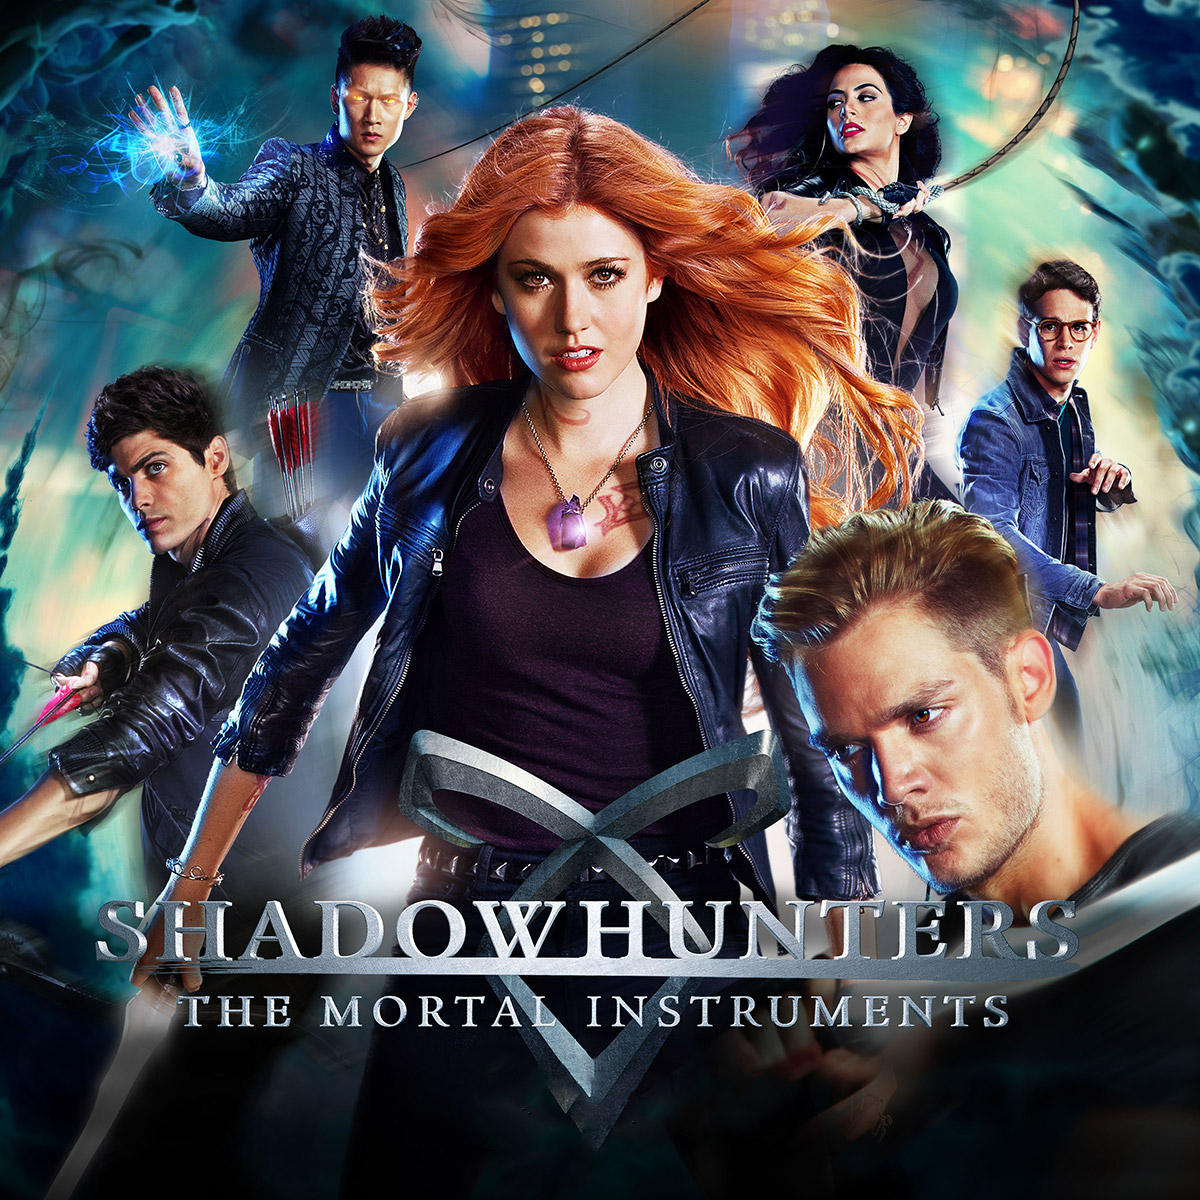 shadowhunters-tv-series-artwork-key-art-logo